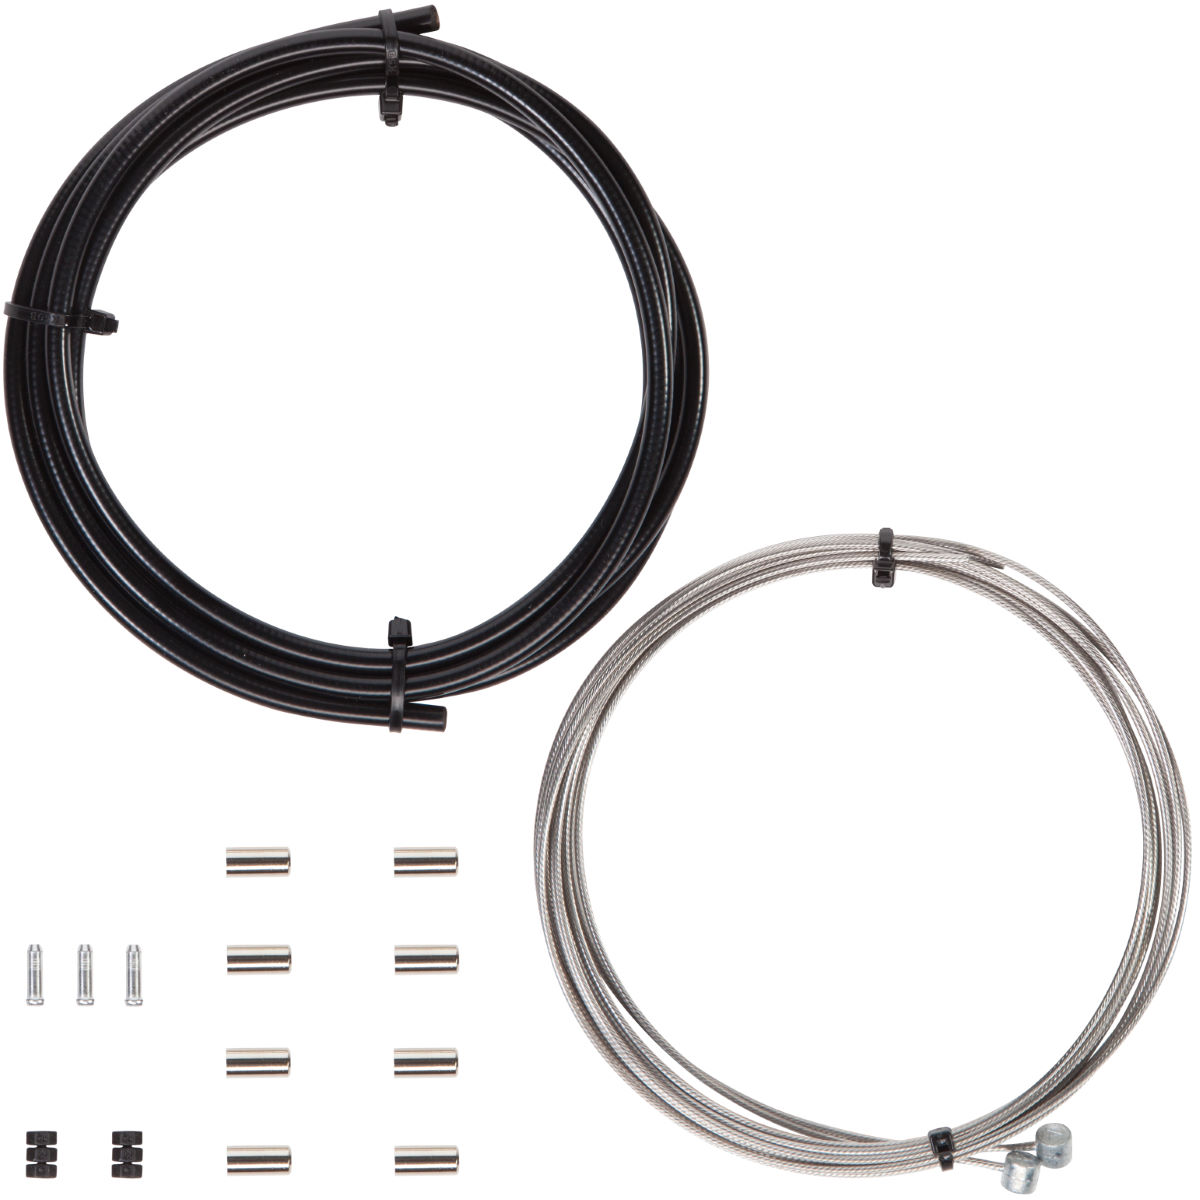 LifeLine Essential Brake Cable Set - MTB/Hybrid